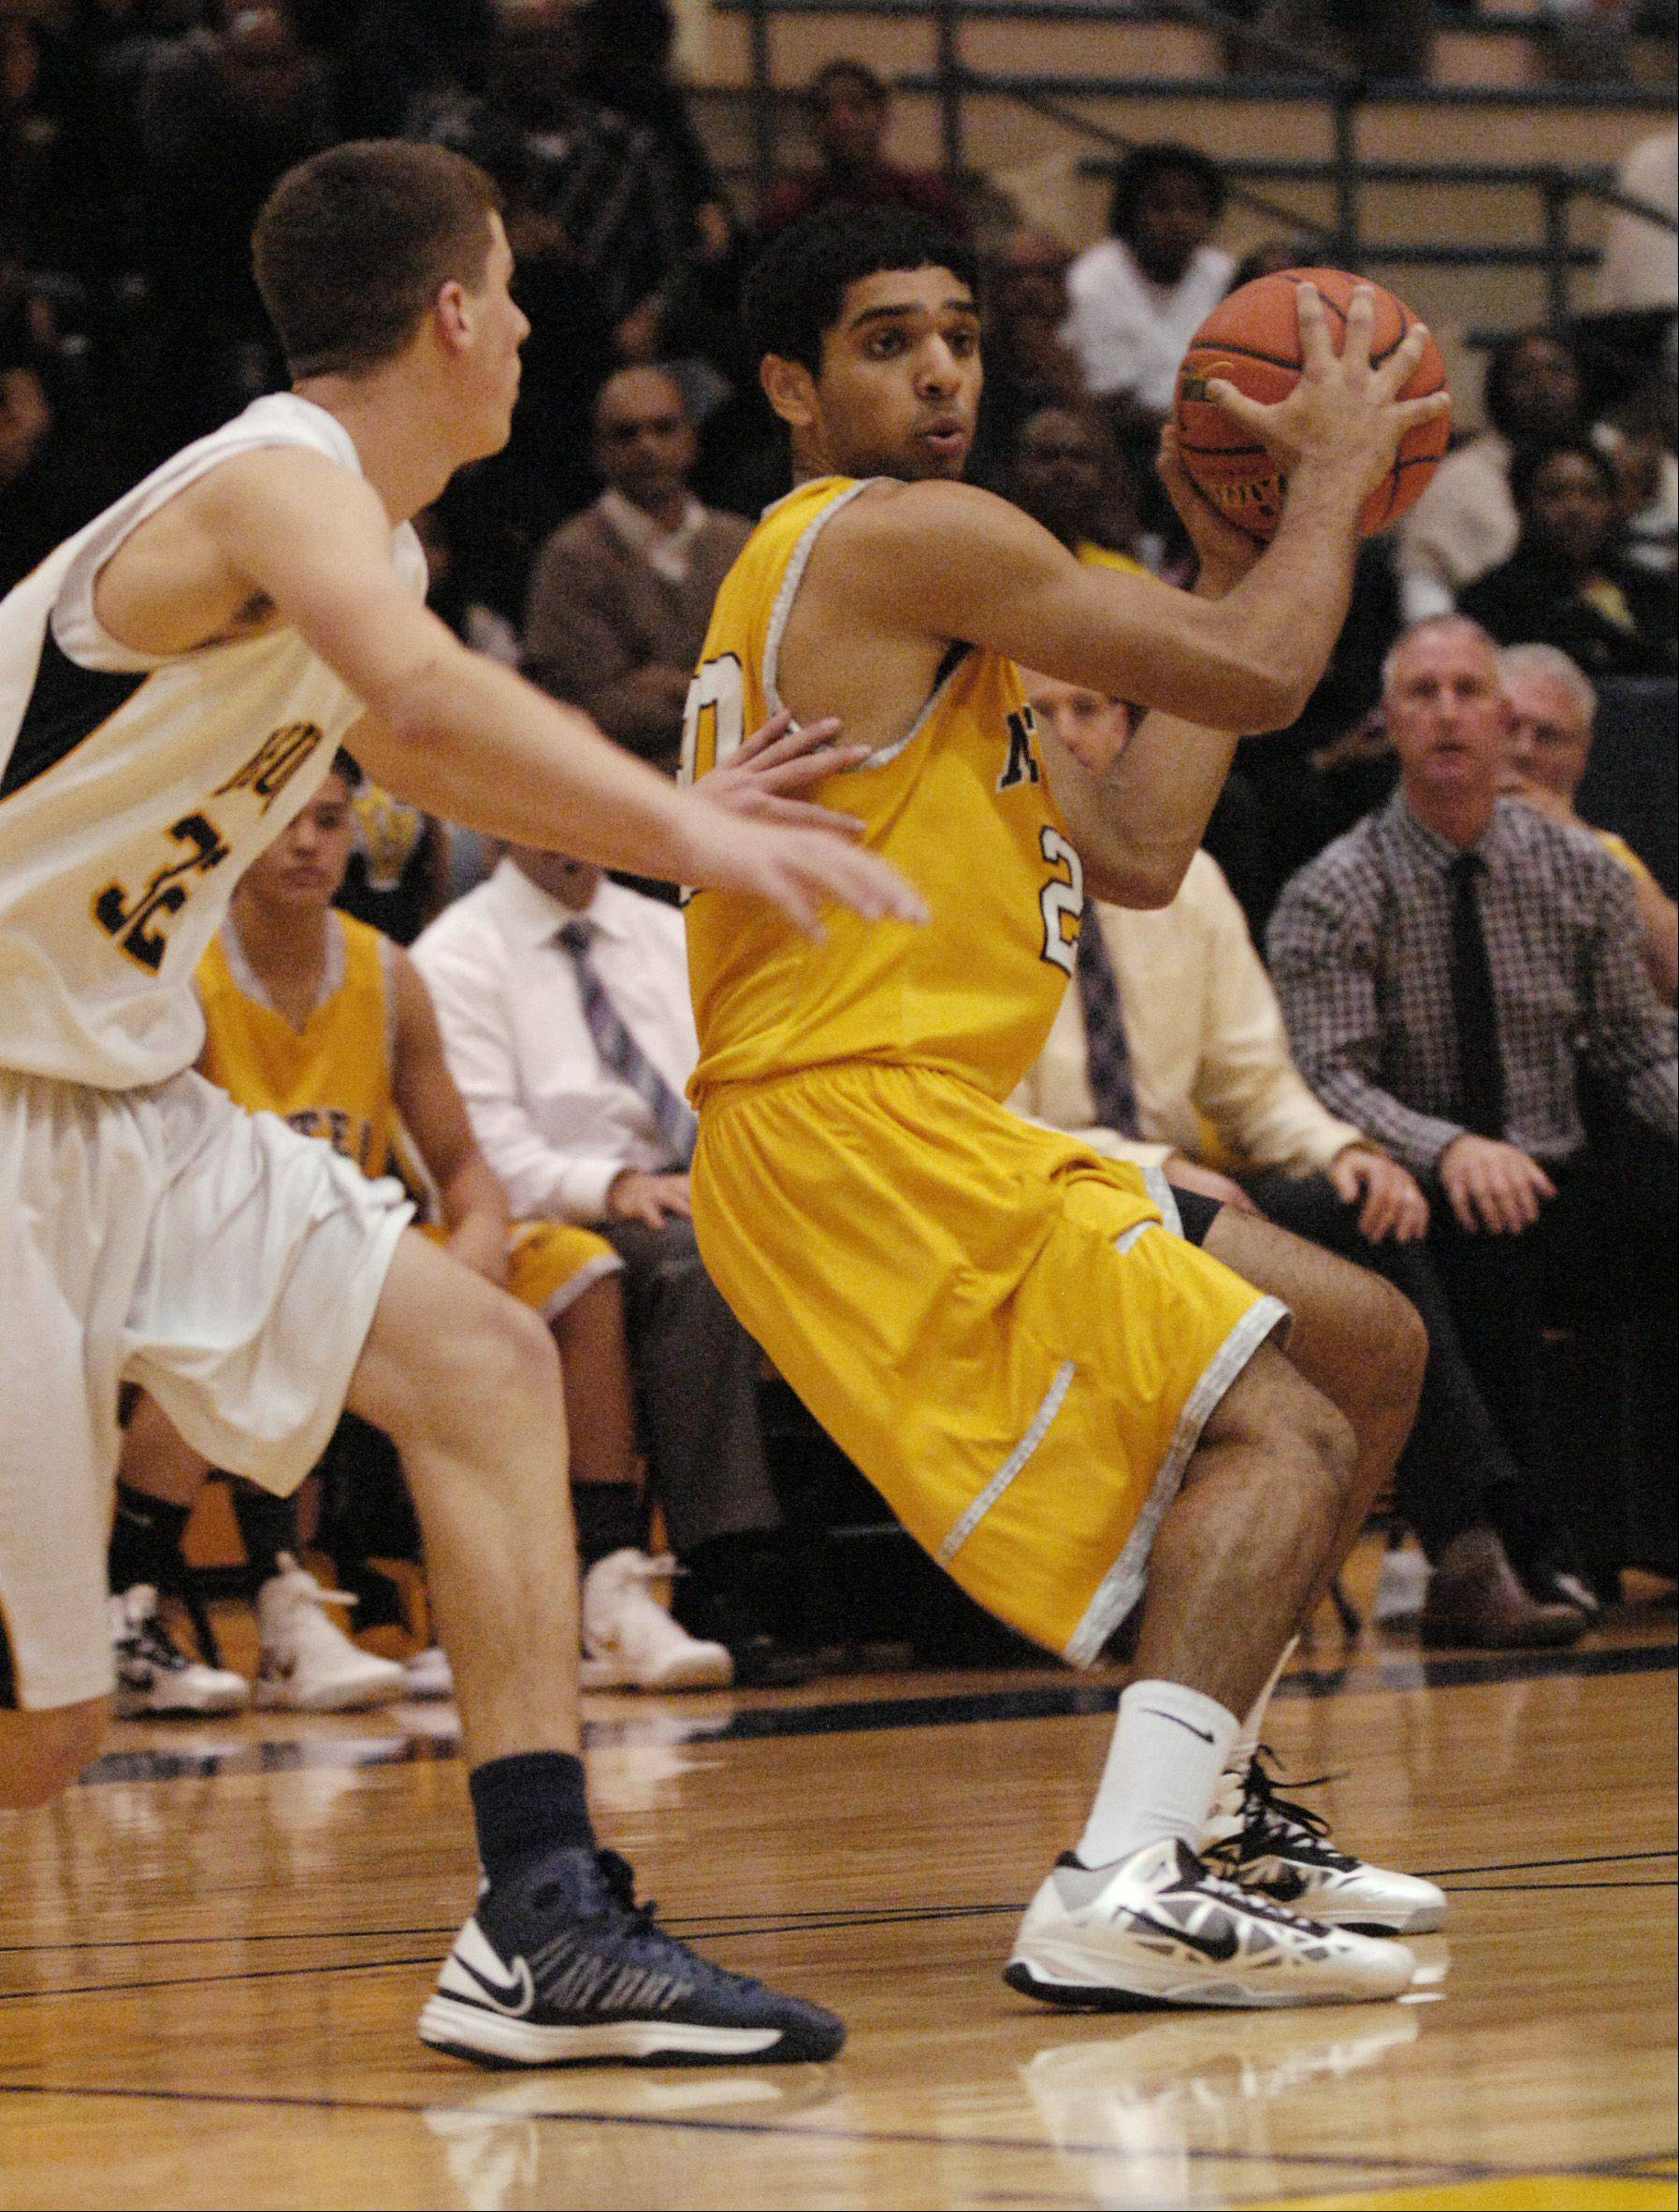 Vin Patel of Metea Valley works to get past Connor Raridon of Neuqua Valley.